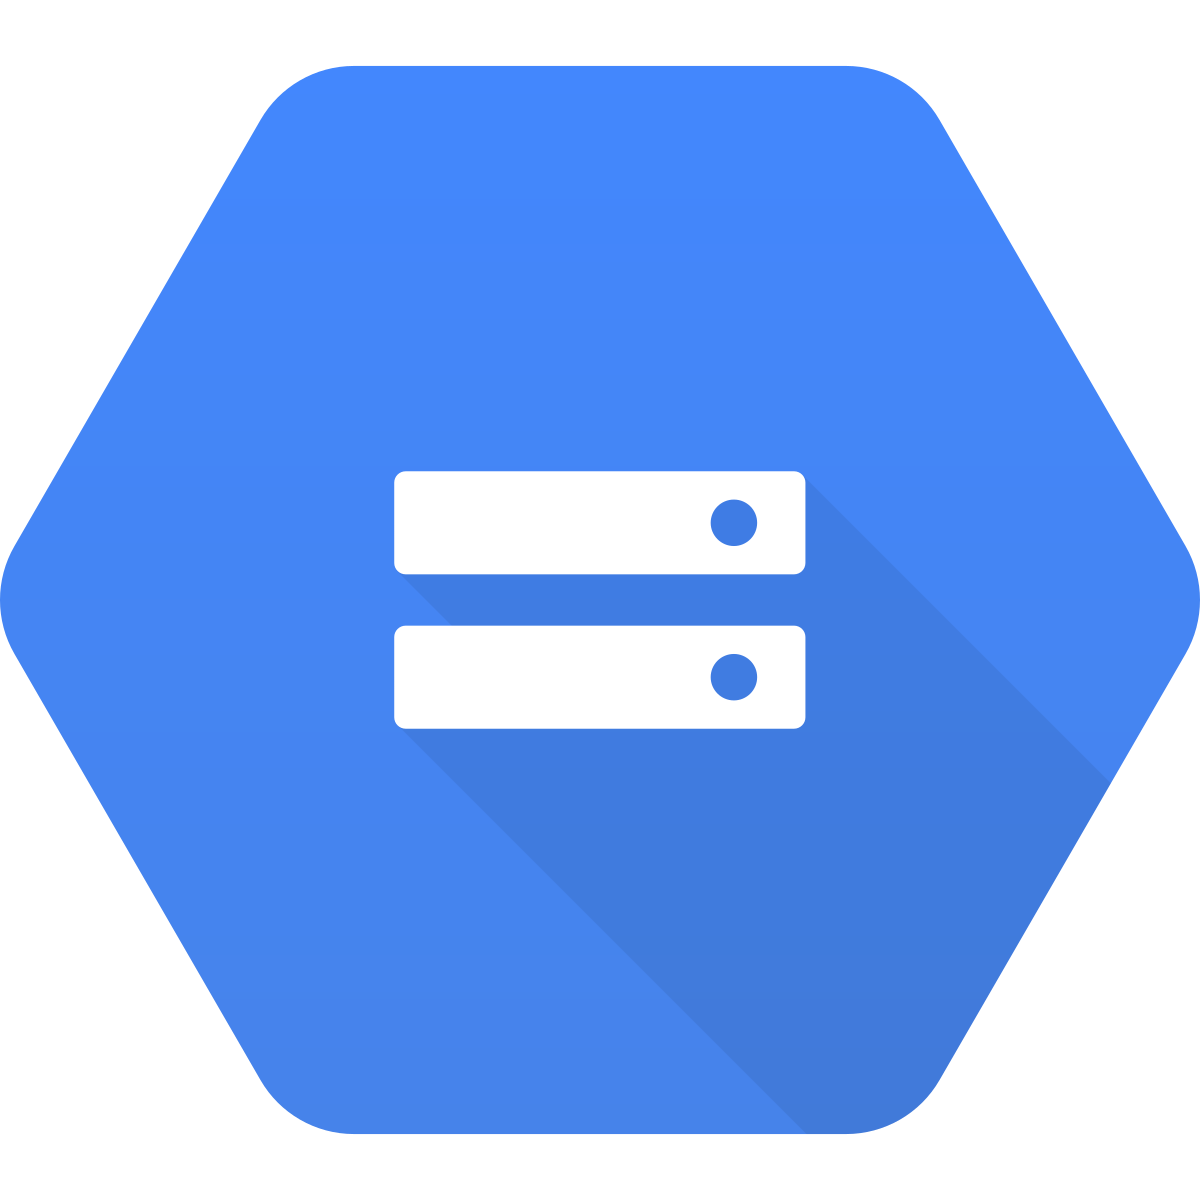 https://storage.googleapis.com/pikarlabs/images/integrations/google-storage.png